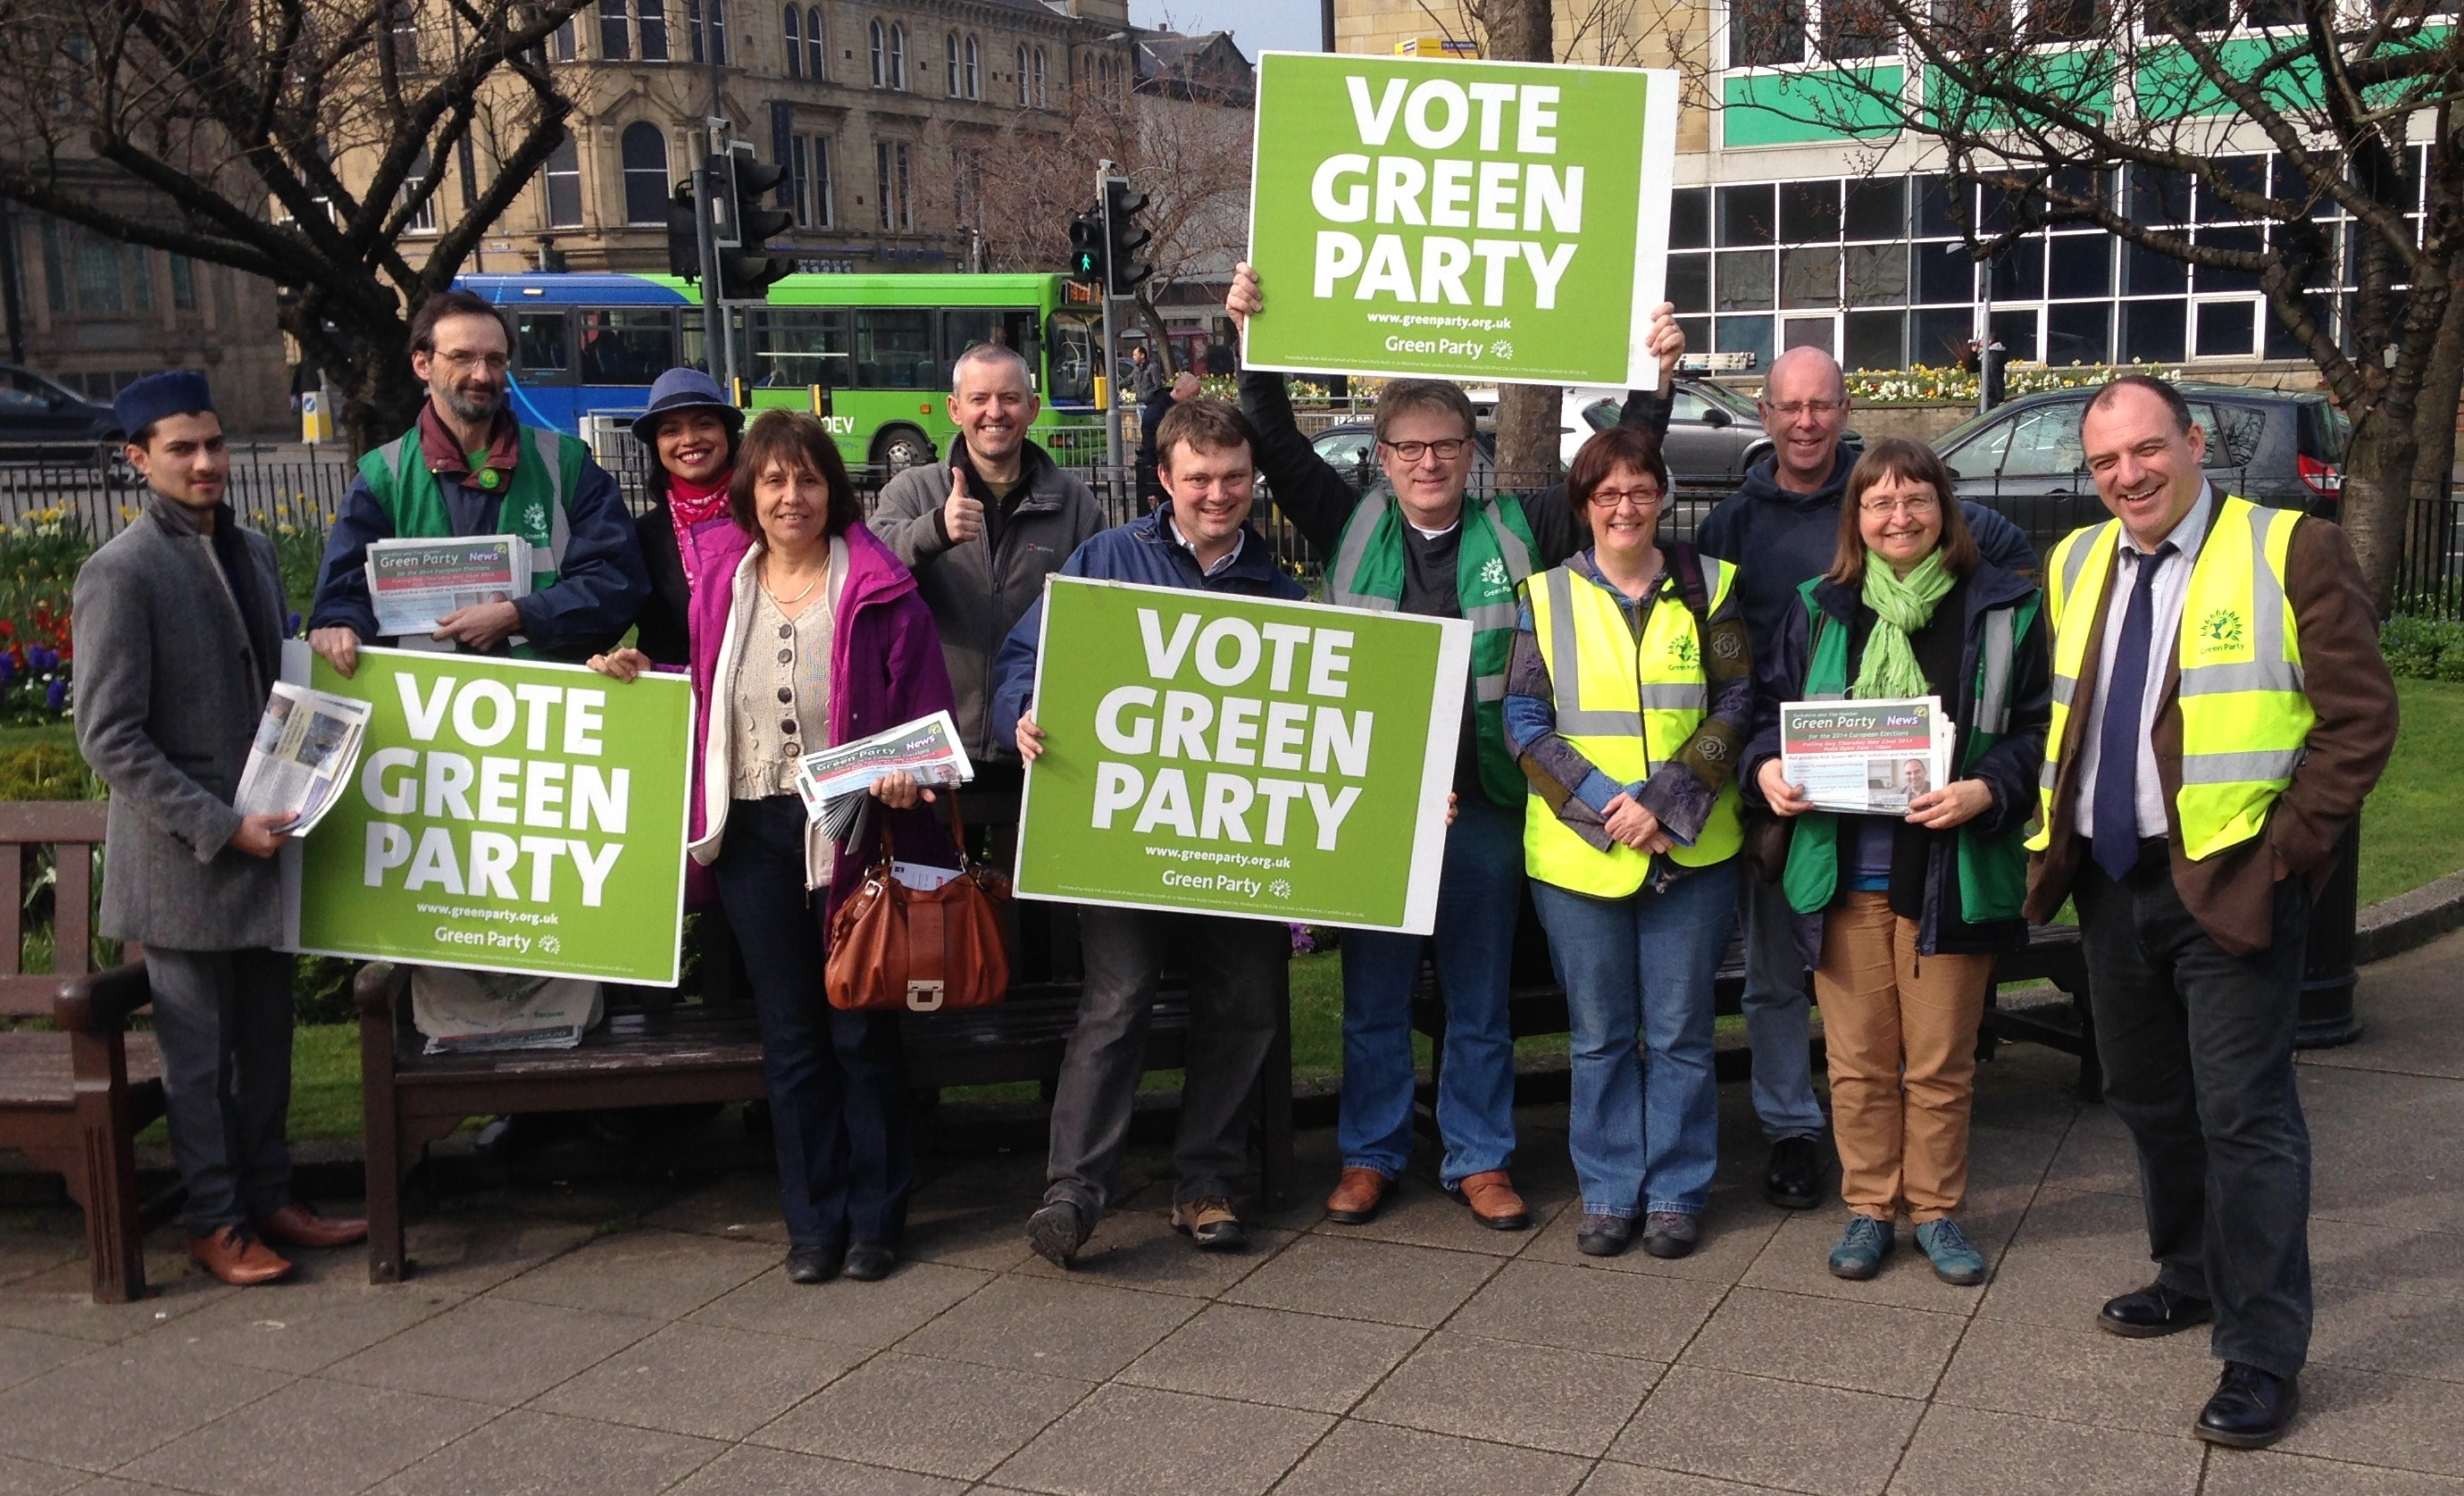 Kevin, with fellow Green campaigners in Keighley in 2014